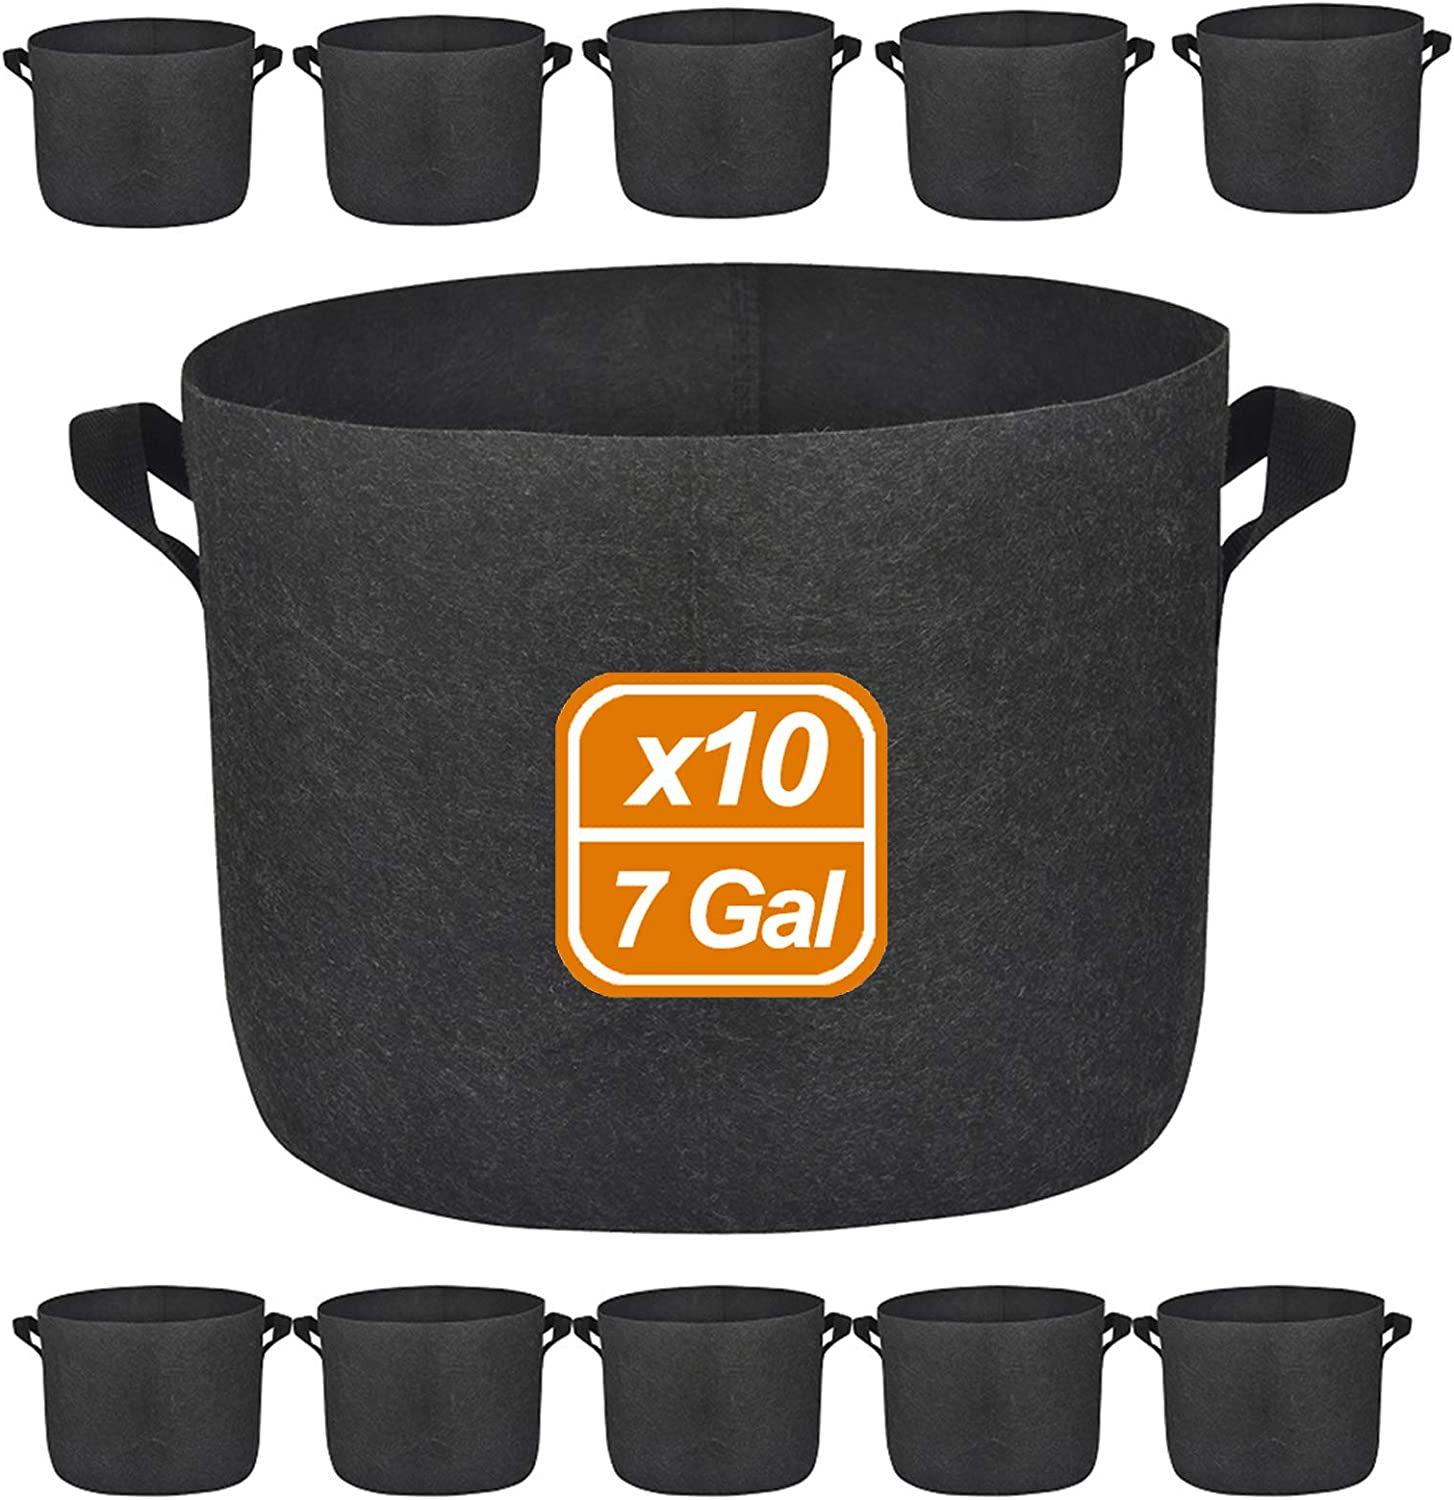 10 Pack 7 Gallon Premium Grow Bags, Heavy Duty Nonwoven Fabric Plants Pots with Handles, Indoor & Outdoor Grow Containers for Vegetables and Fruits